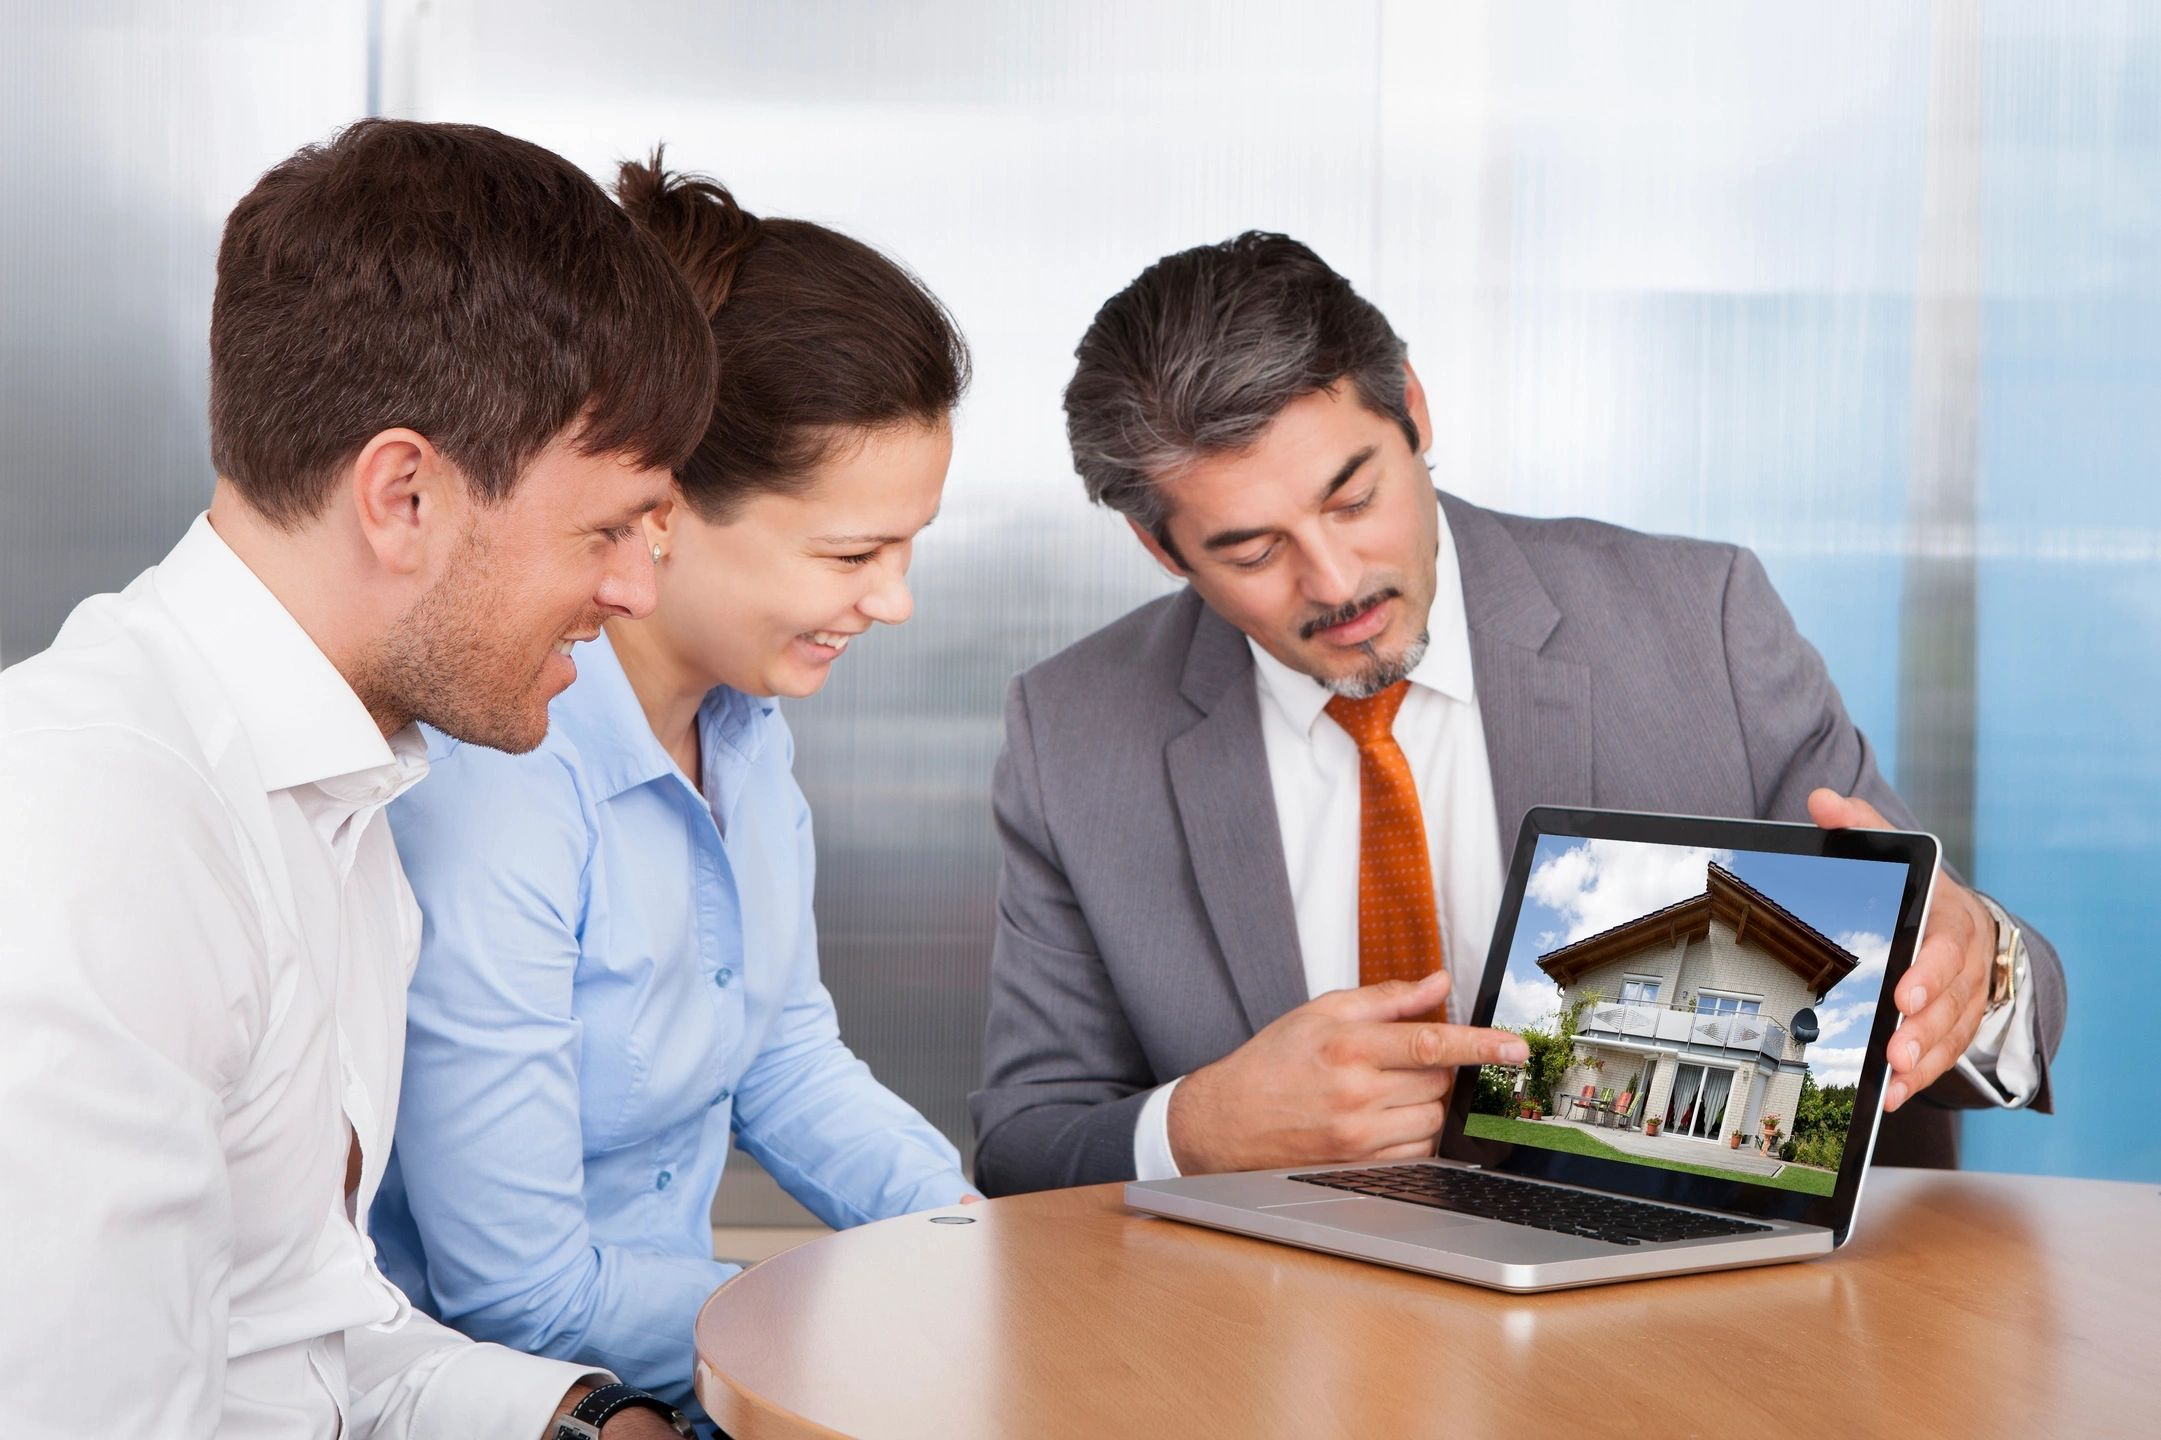 home search, home, house, dream home, dream house, searching for a home, online searching, zillow, redfin, trulia, mls. divito dream makers, denver dream making, making dreams come true, buy, buying, homebuyer, first time home buyer